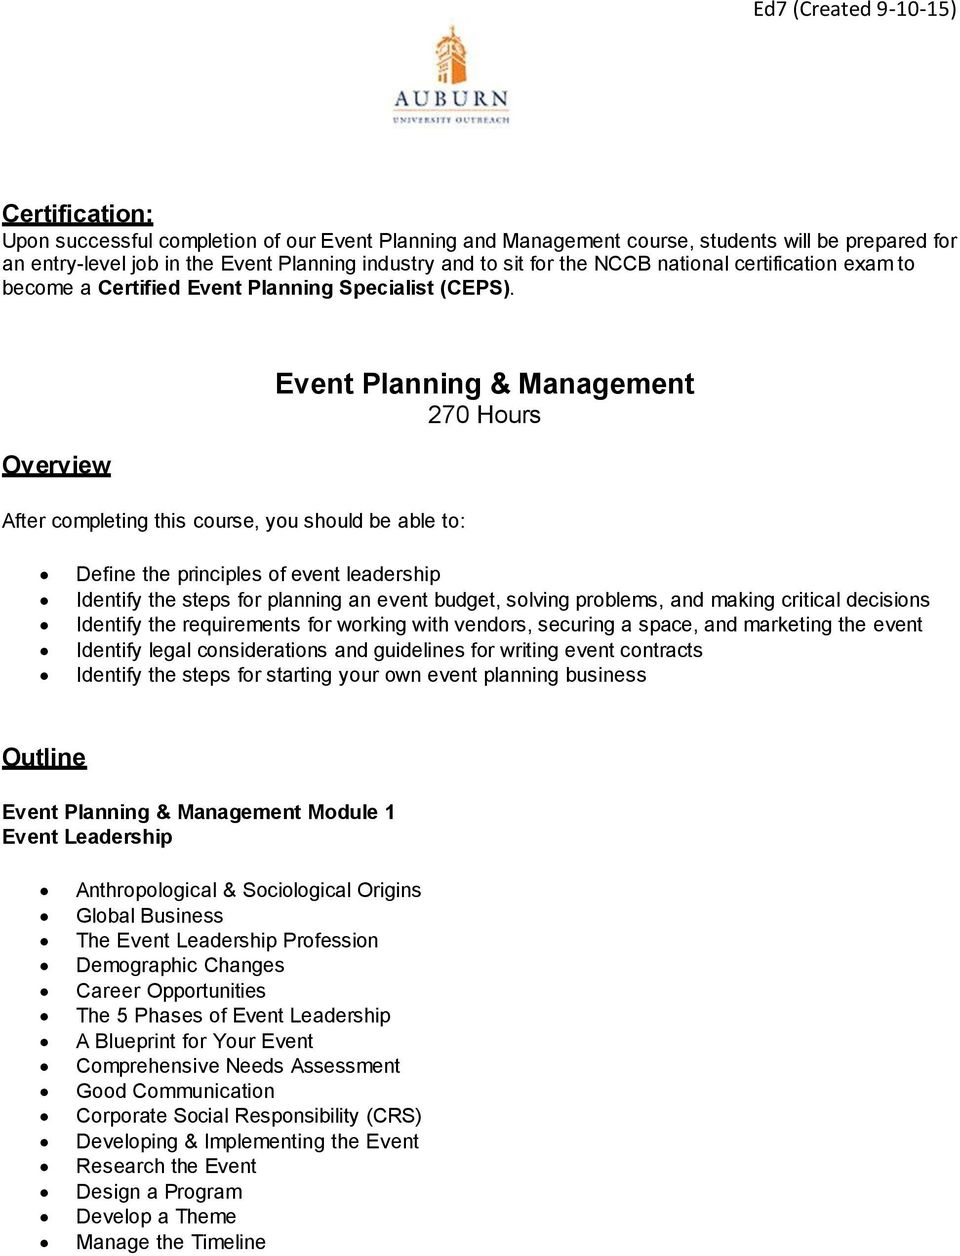 Overview After completing this course, you should be able to: Event Planning & Management 270 Hours Define the principles of event leadership Identify the steps for planning an event budget, solving